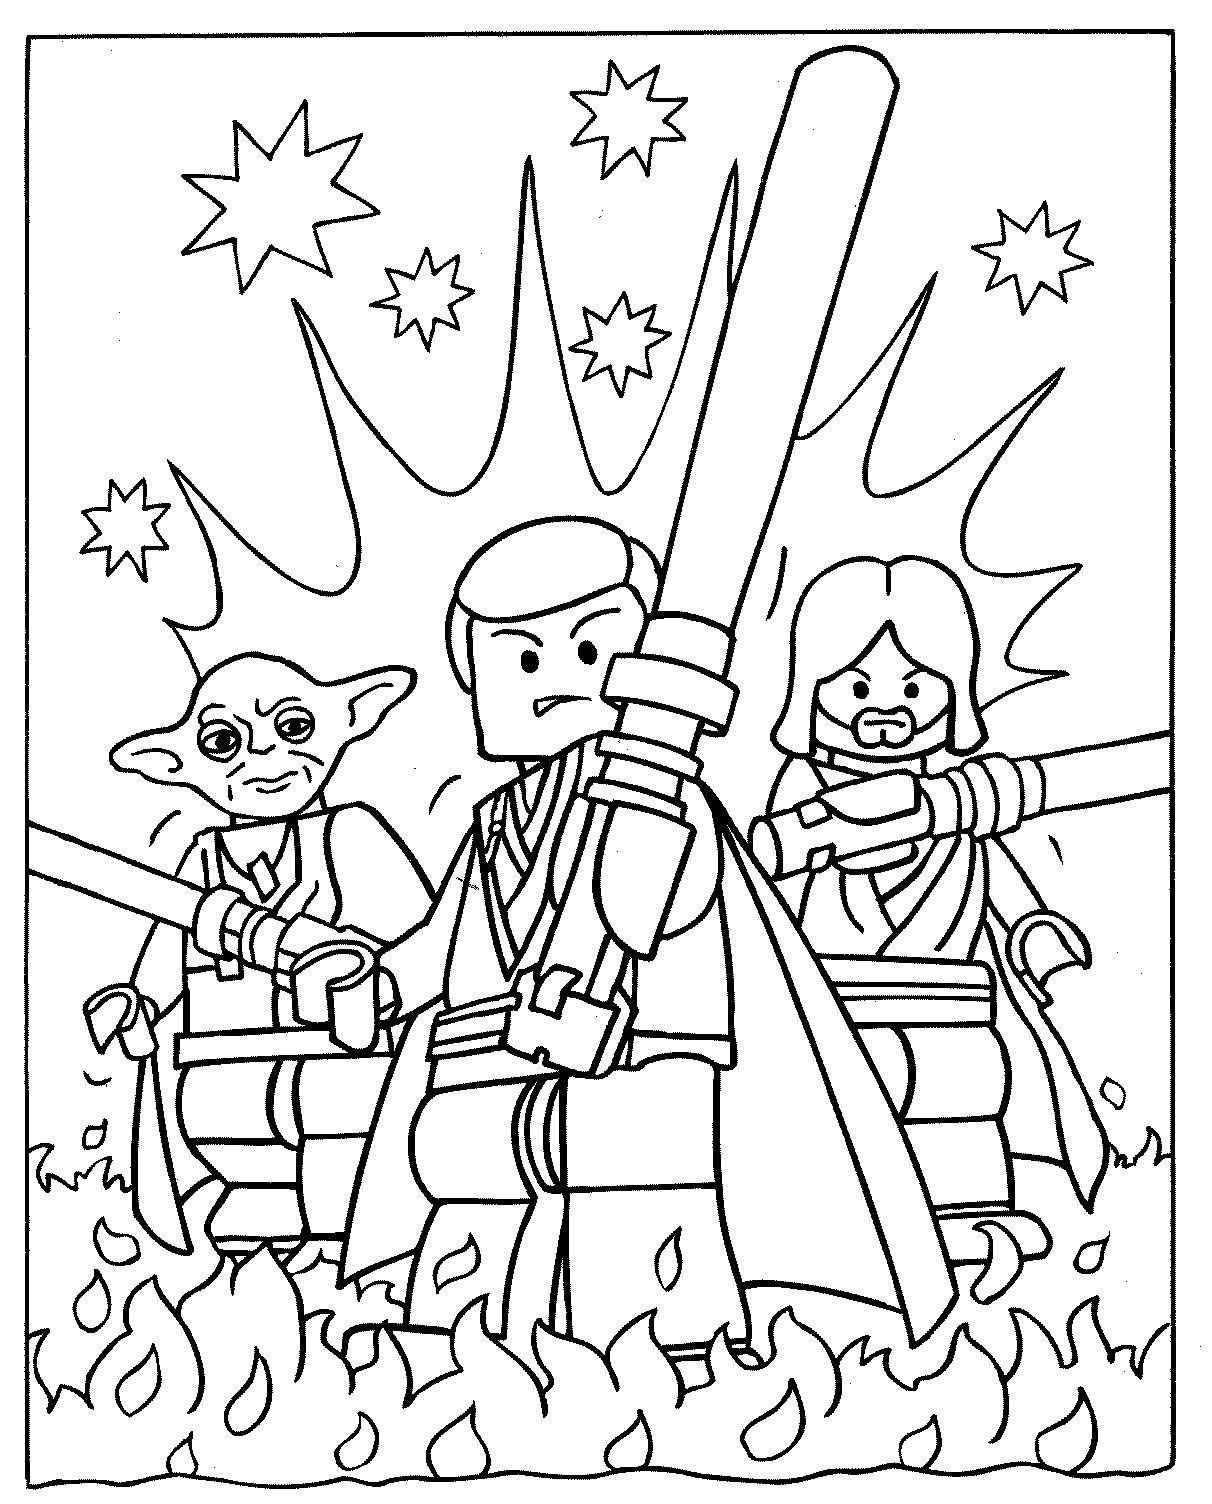 Lego coloring pages | For My Little Boy | Pinterest | Páginas para ...